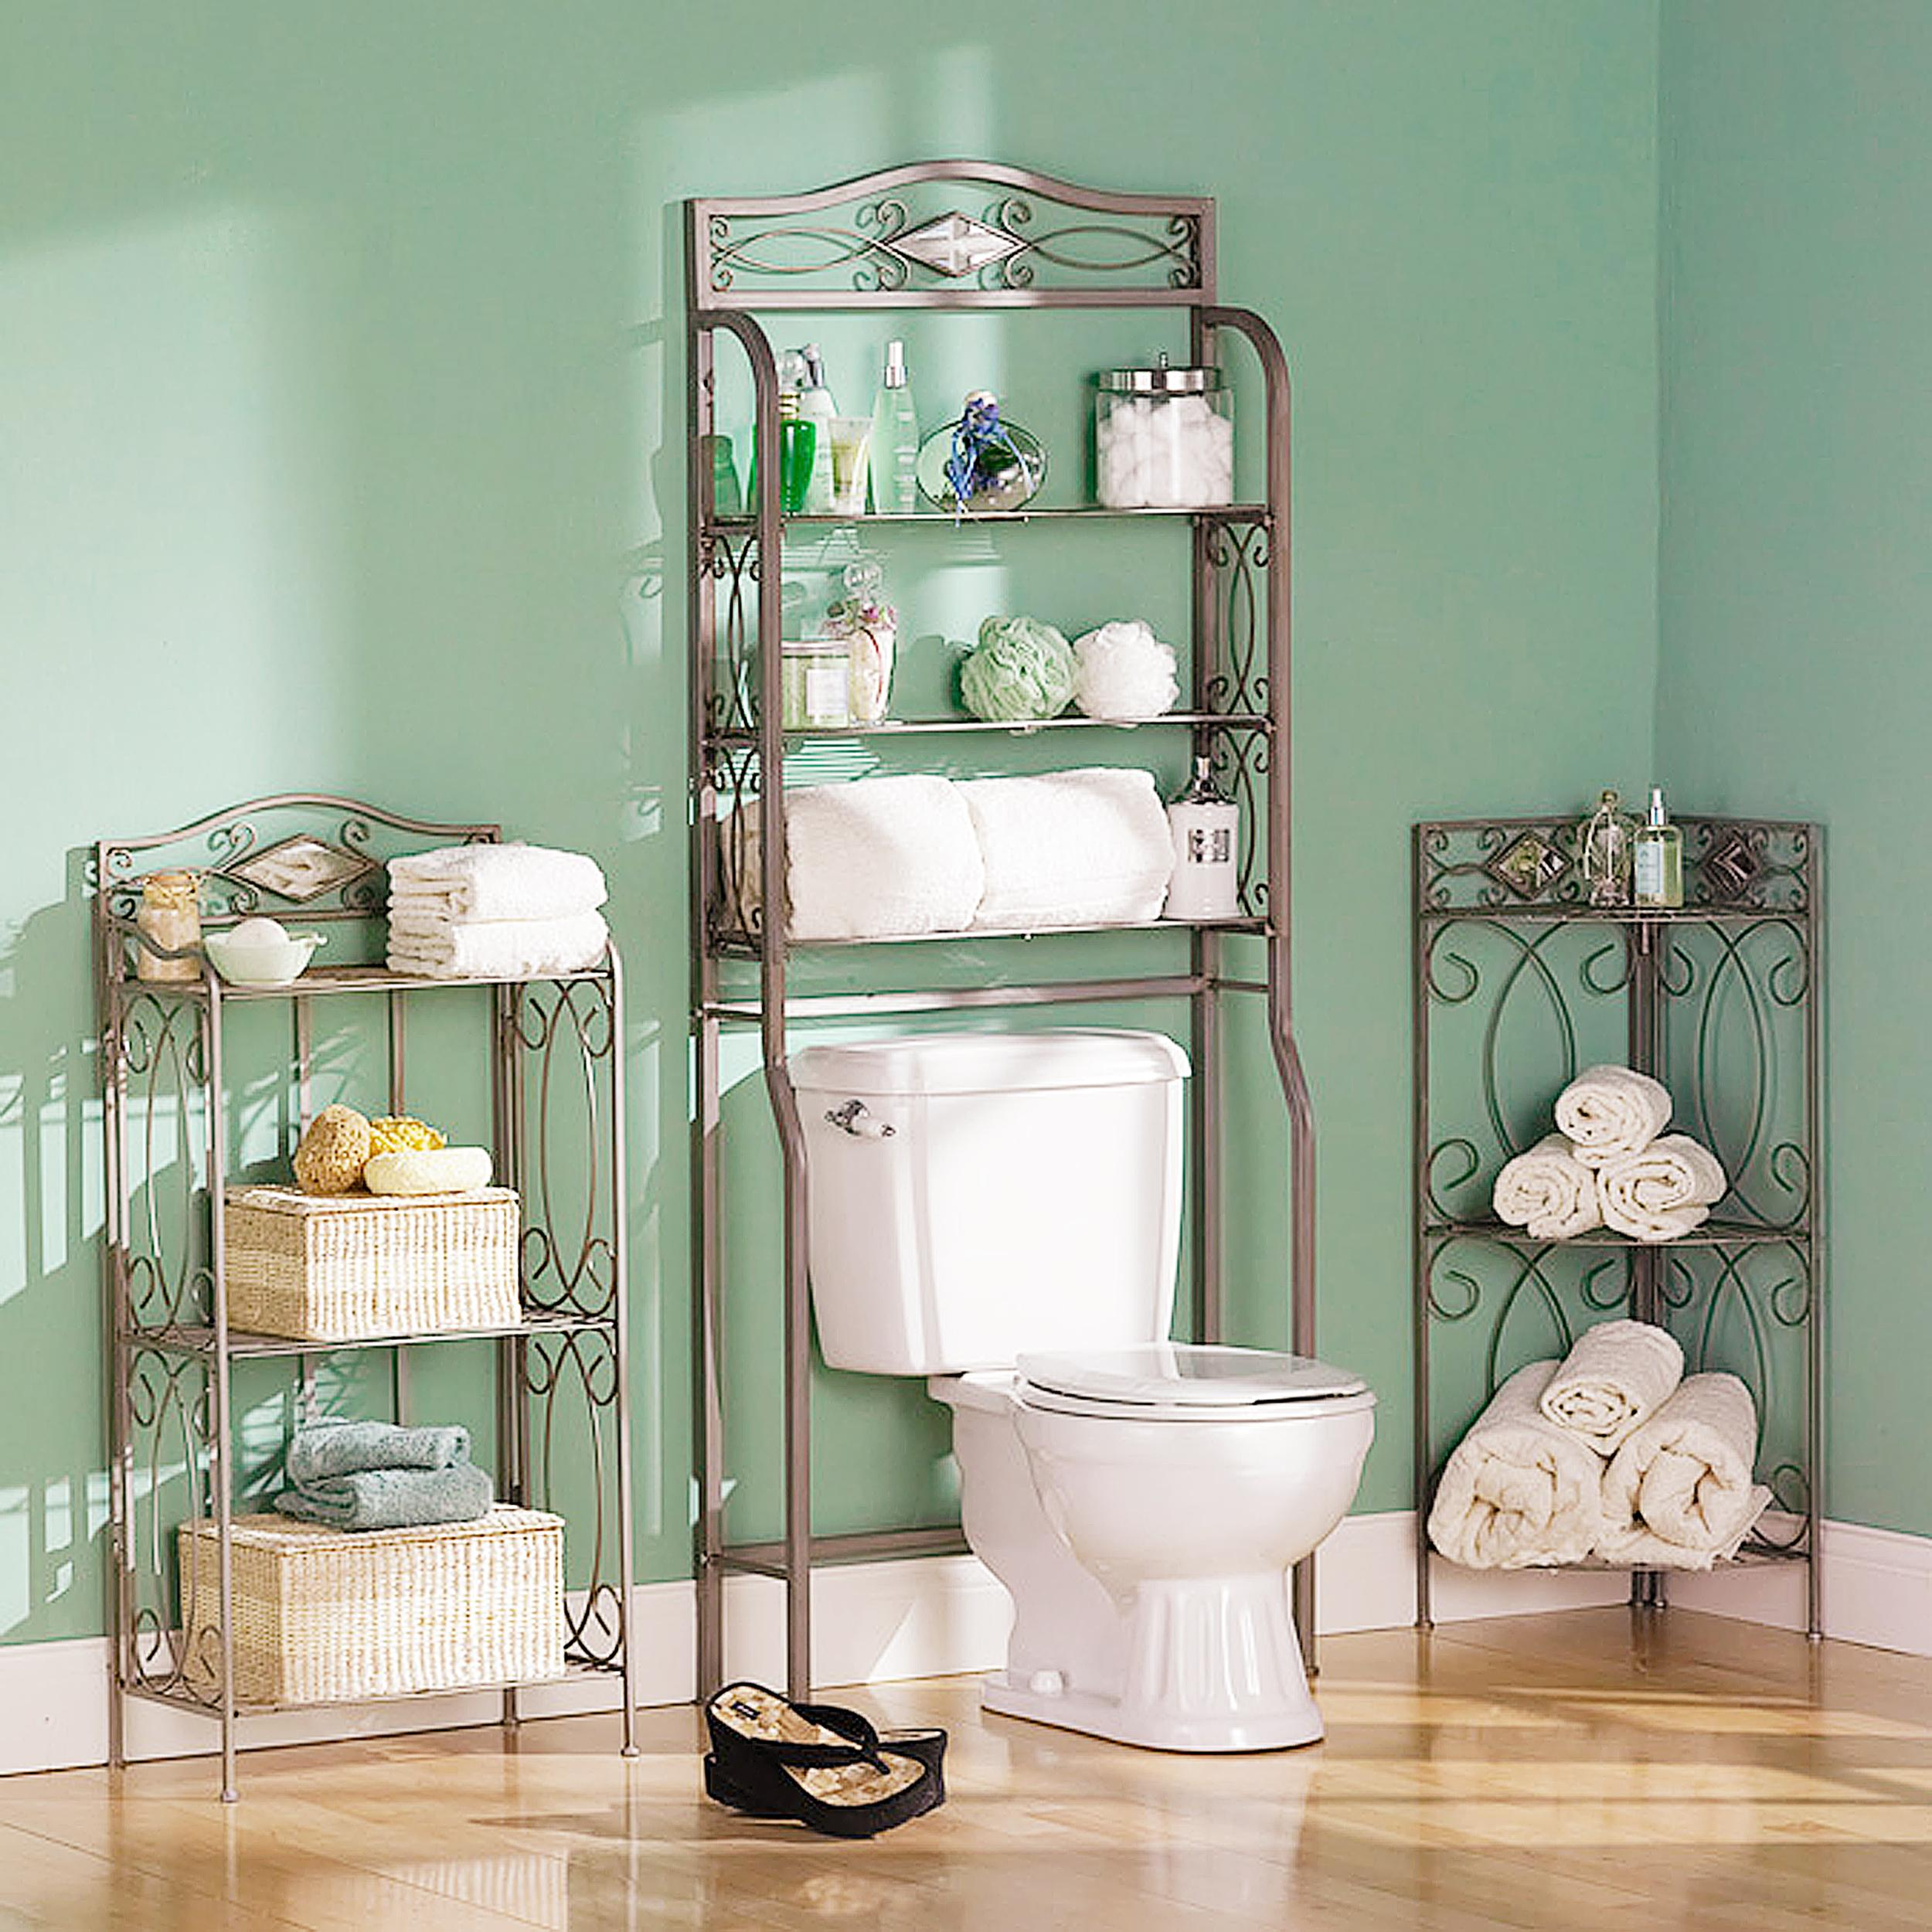 Amazon.com: Southern Enterprises Reflections 3 Tier Bath Rack ...